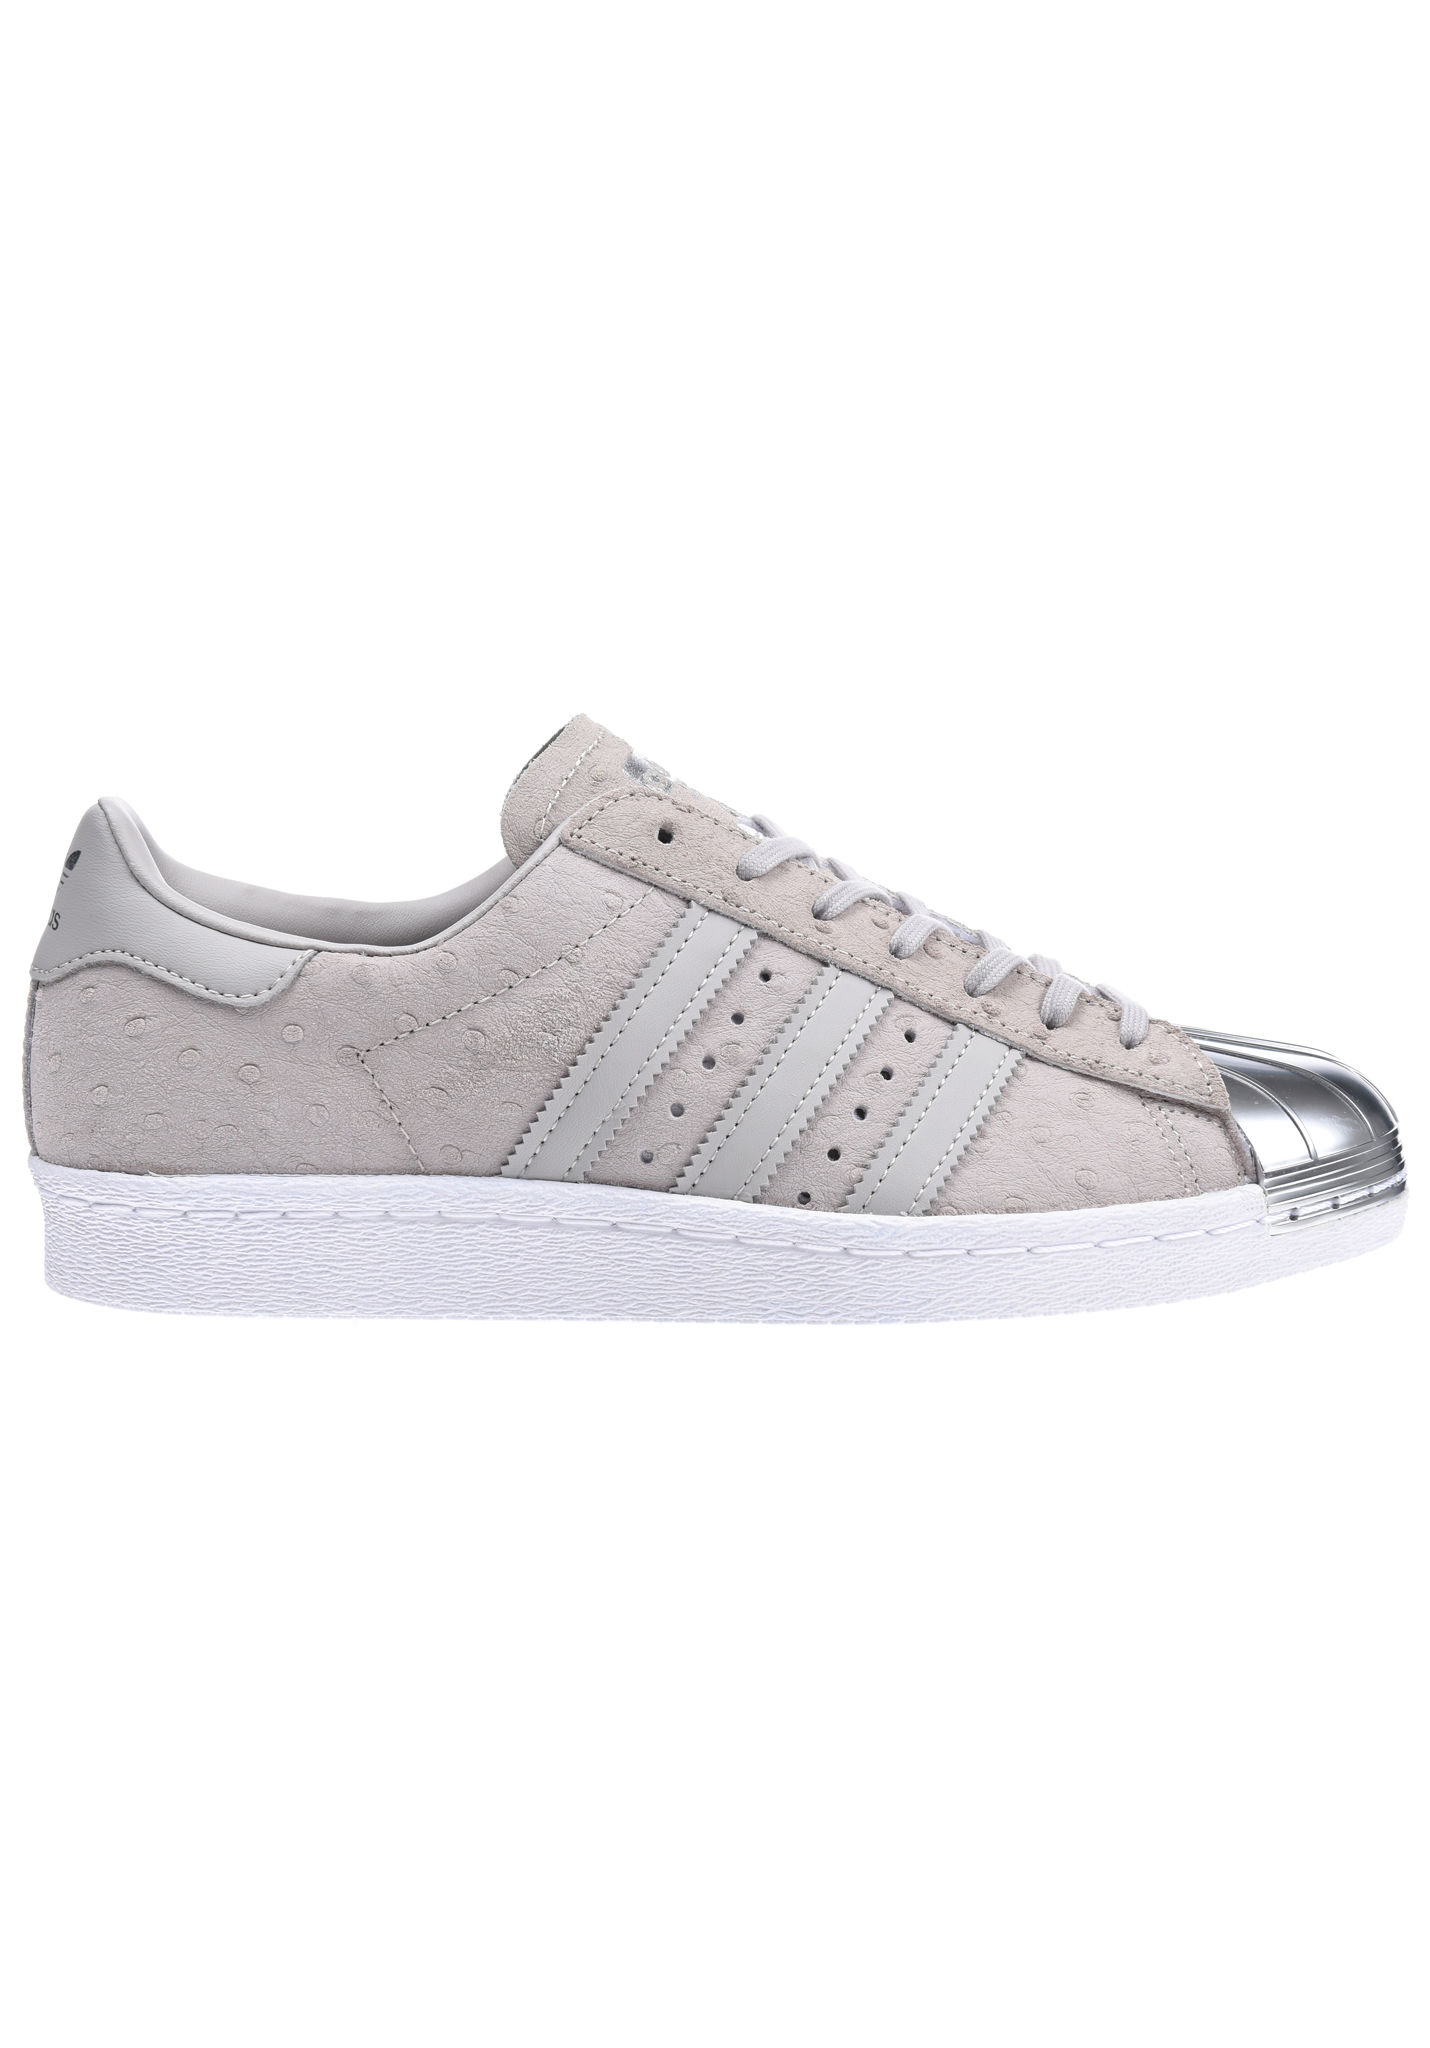 ADIDAS Superstar 80s Metal - Sneakers for Women - Grey - Planet Sports 42c78e35c193